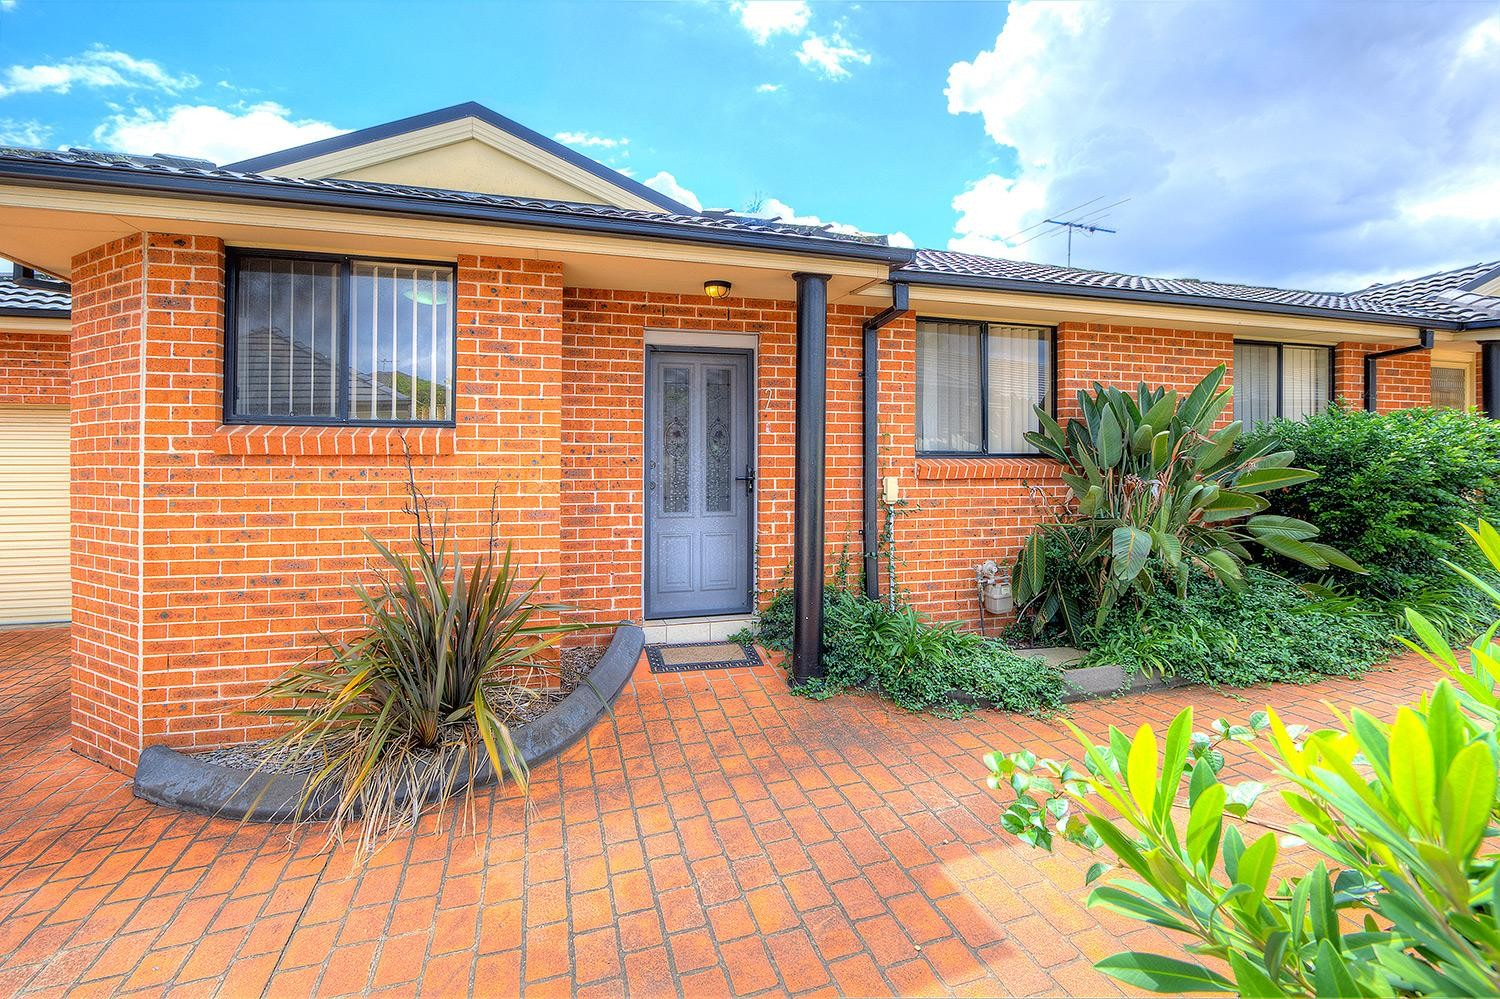 Best Value Villa in the Area! Low Strata Fees!